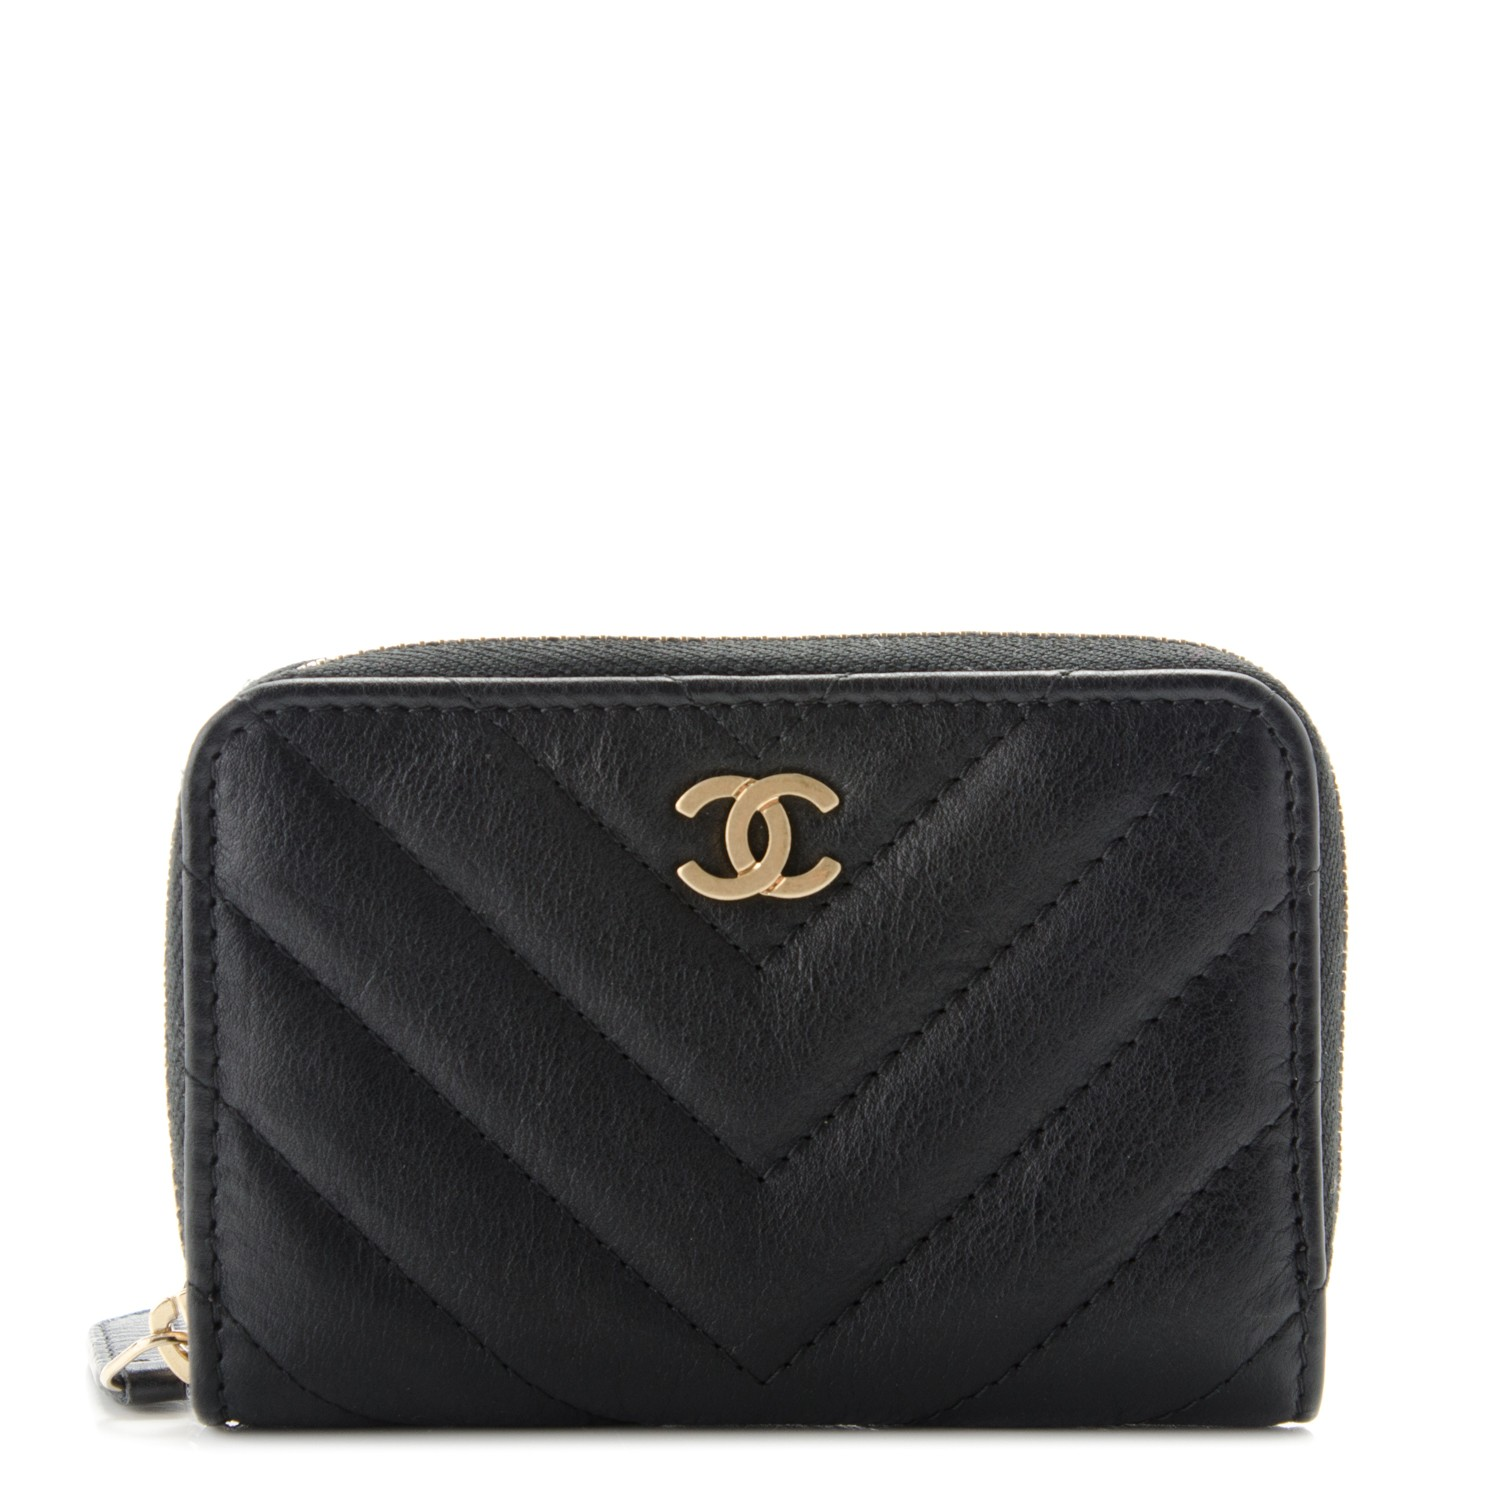 9a6b32f26239 CHANEL Calfskin Chevron Quilted Zip Around Coin Purse Wallet Black 178662